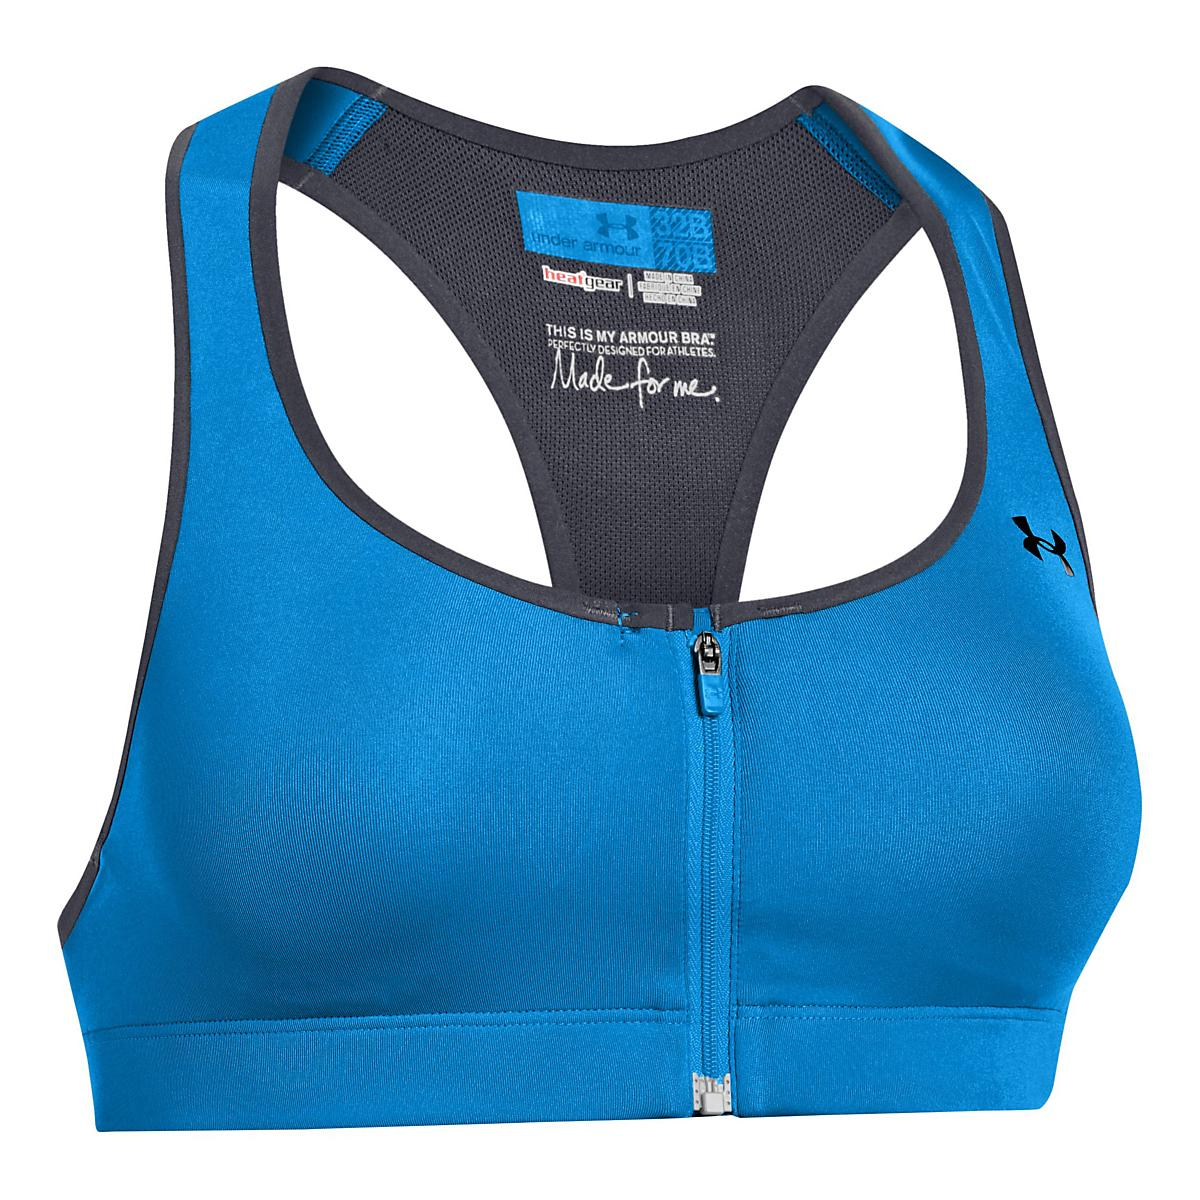 Womens Under Armour Armour Protegee C Sports Bras at Road Runner Sports 9f8293652